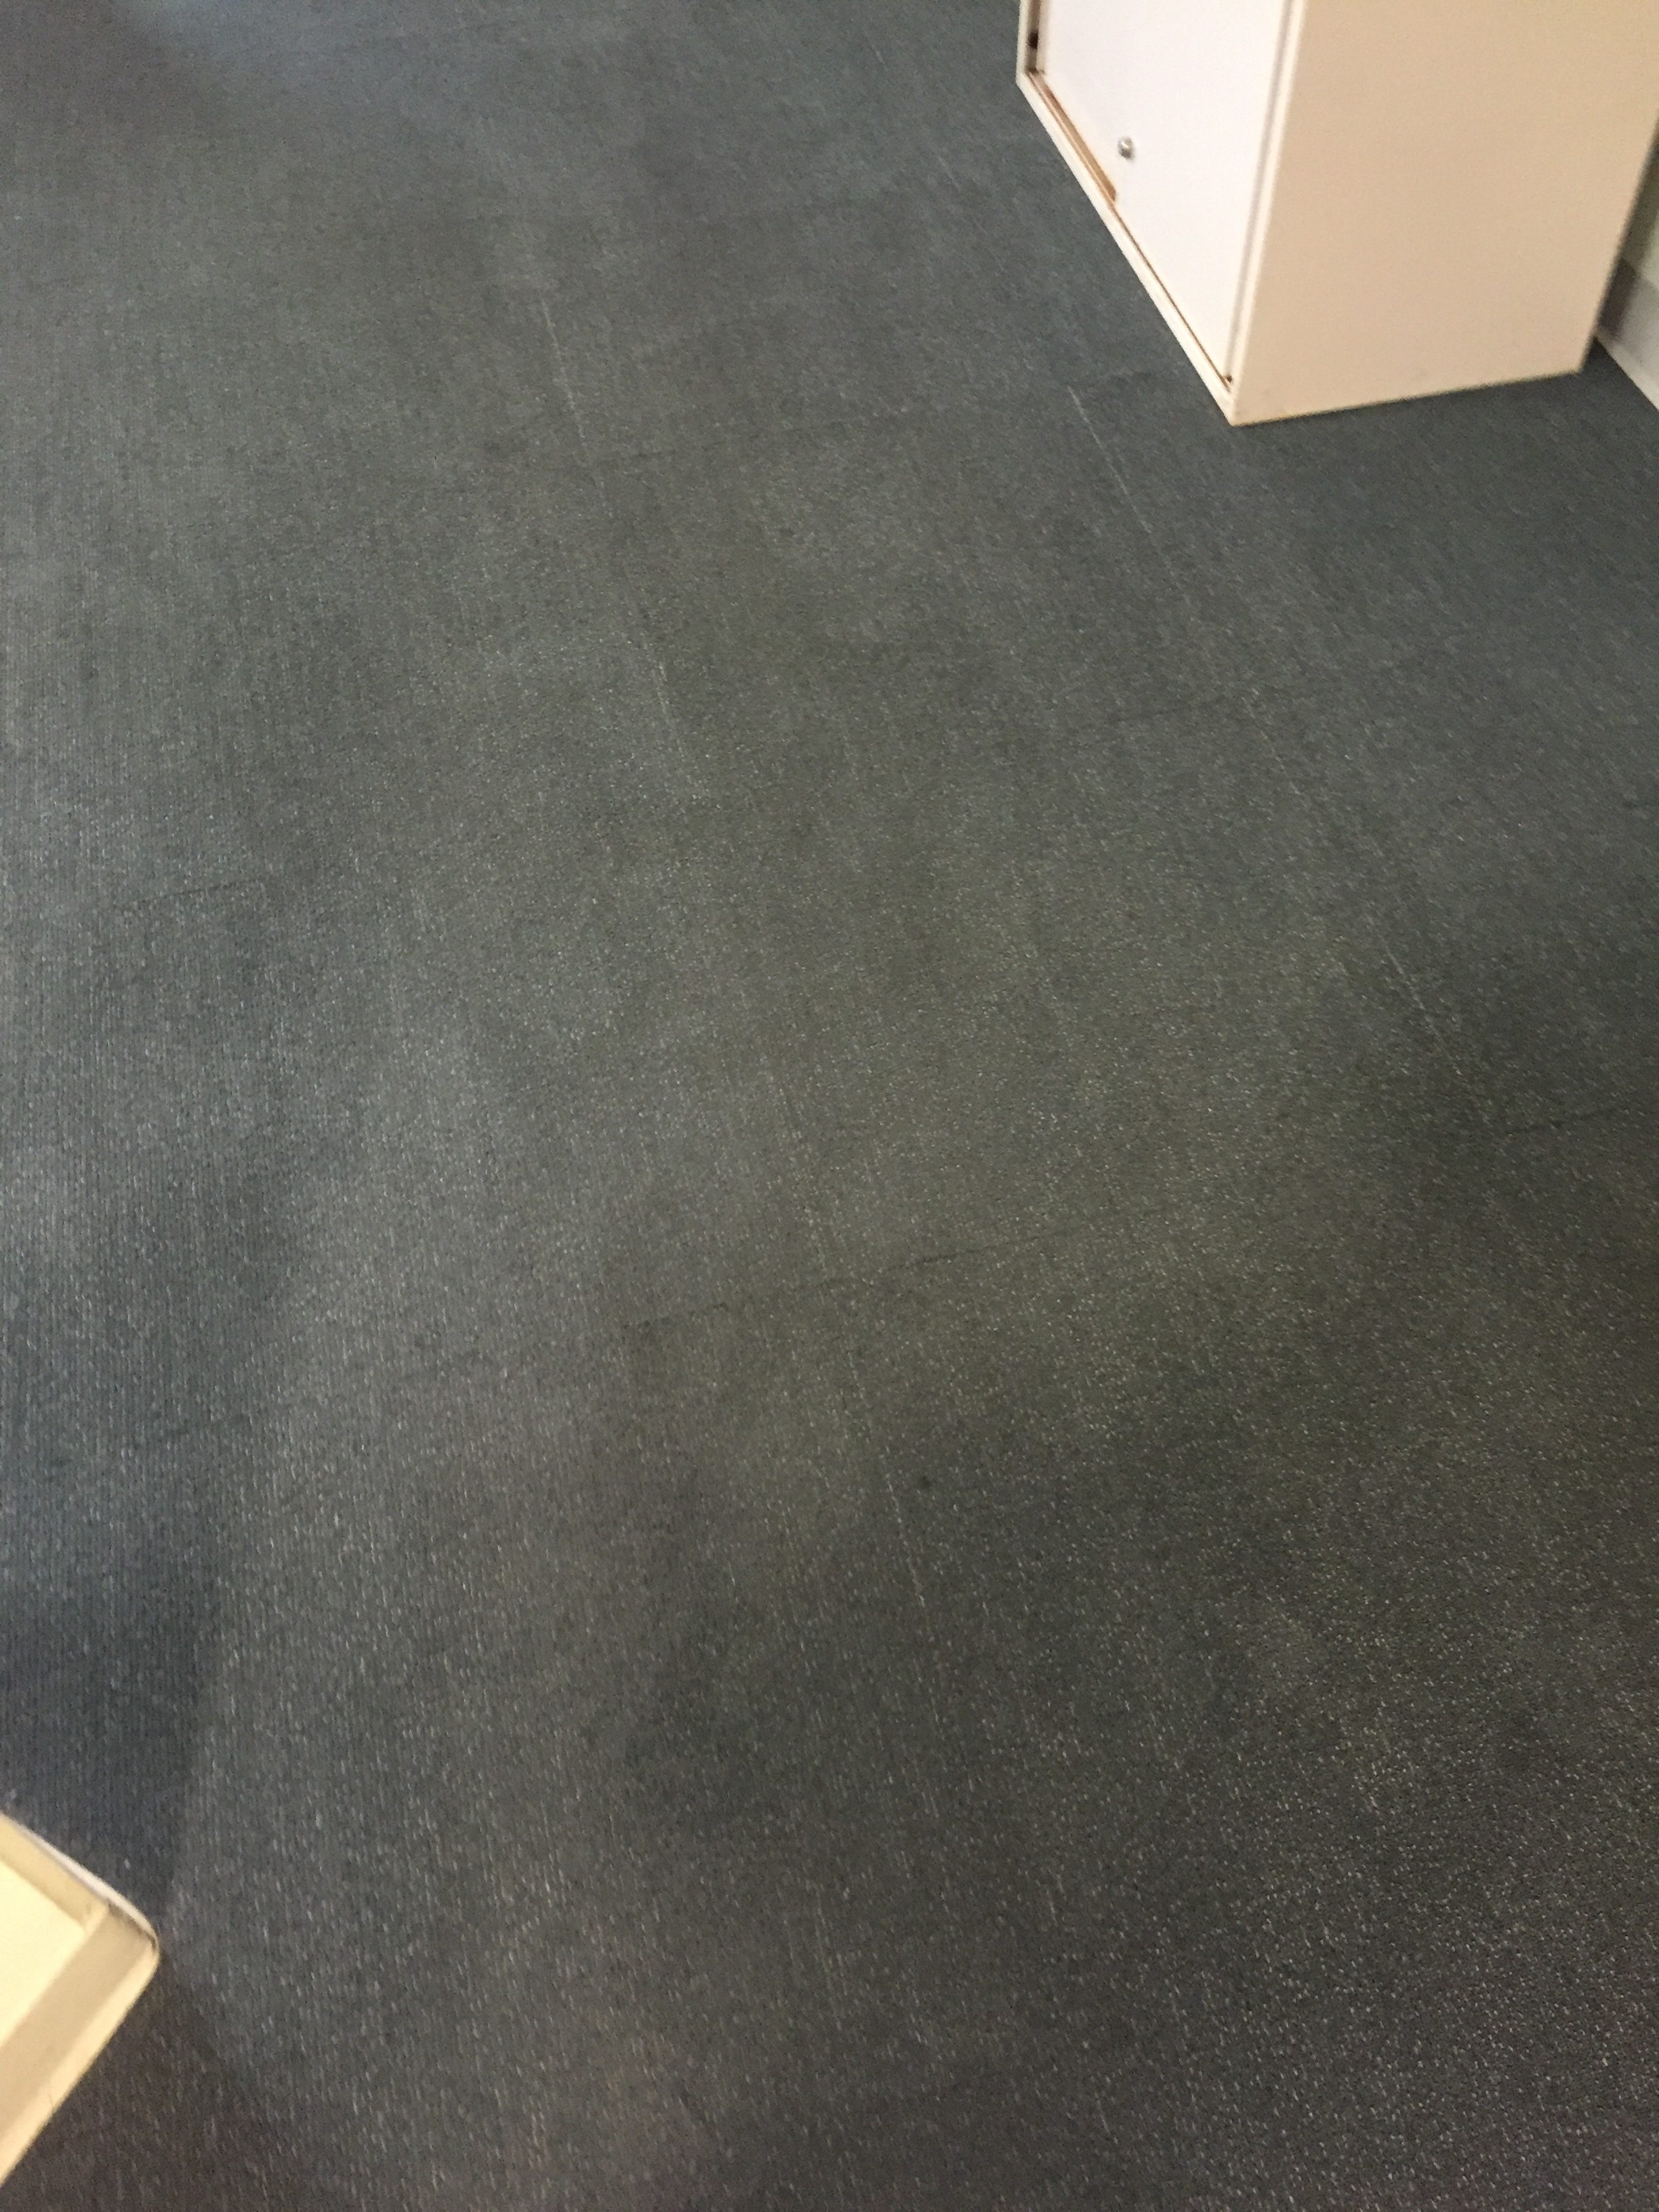 Office Carpet Cleaning – After